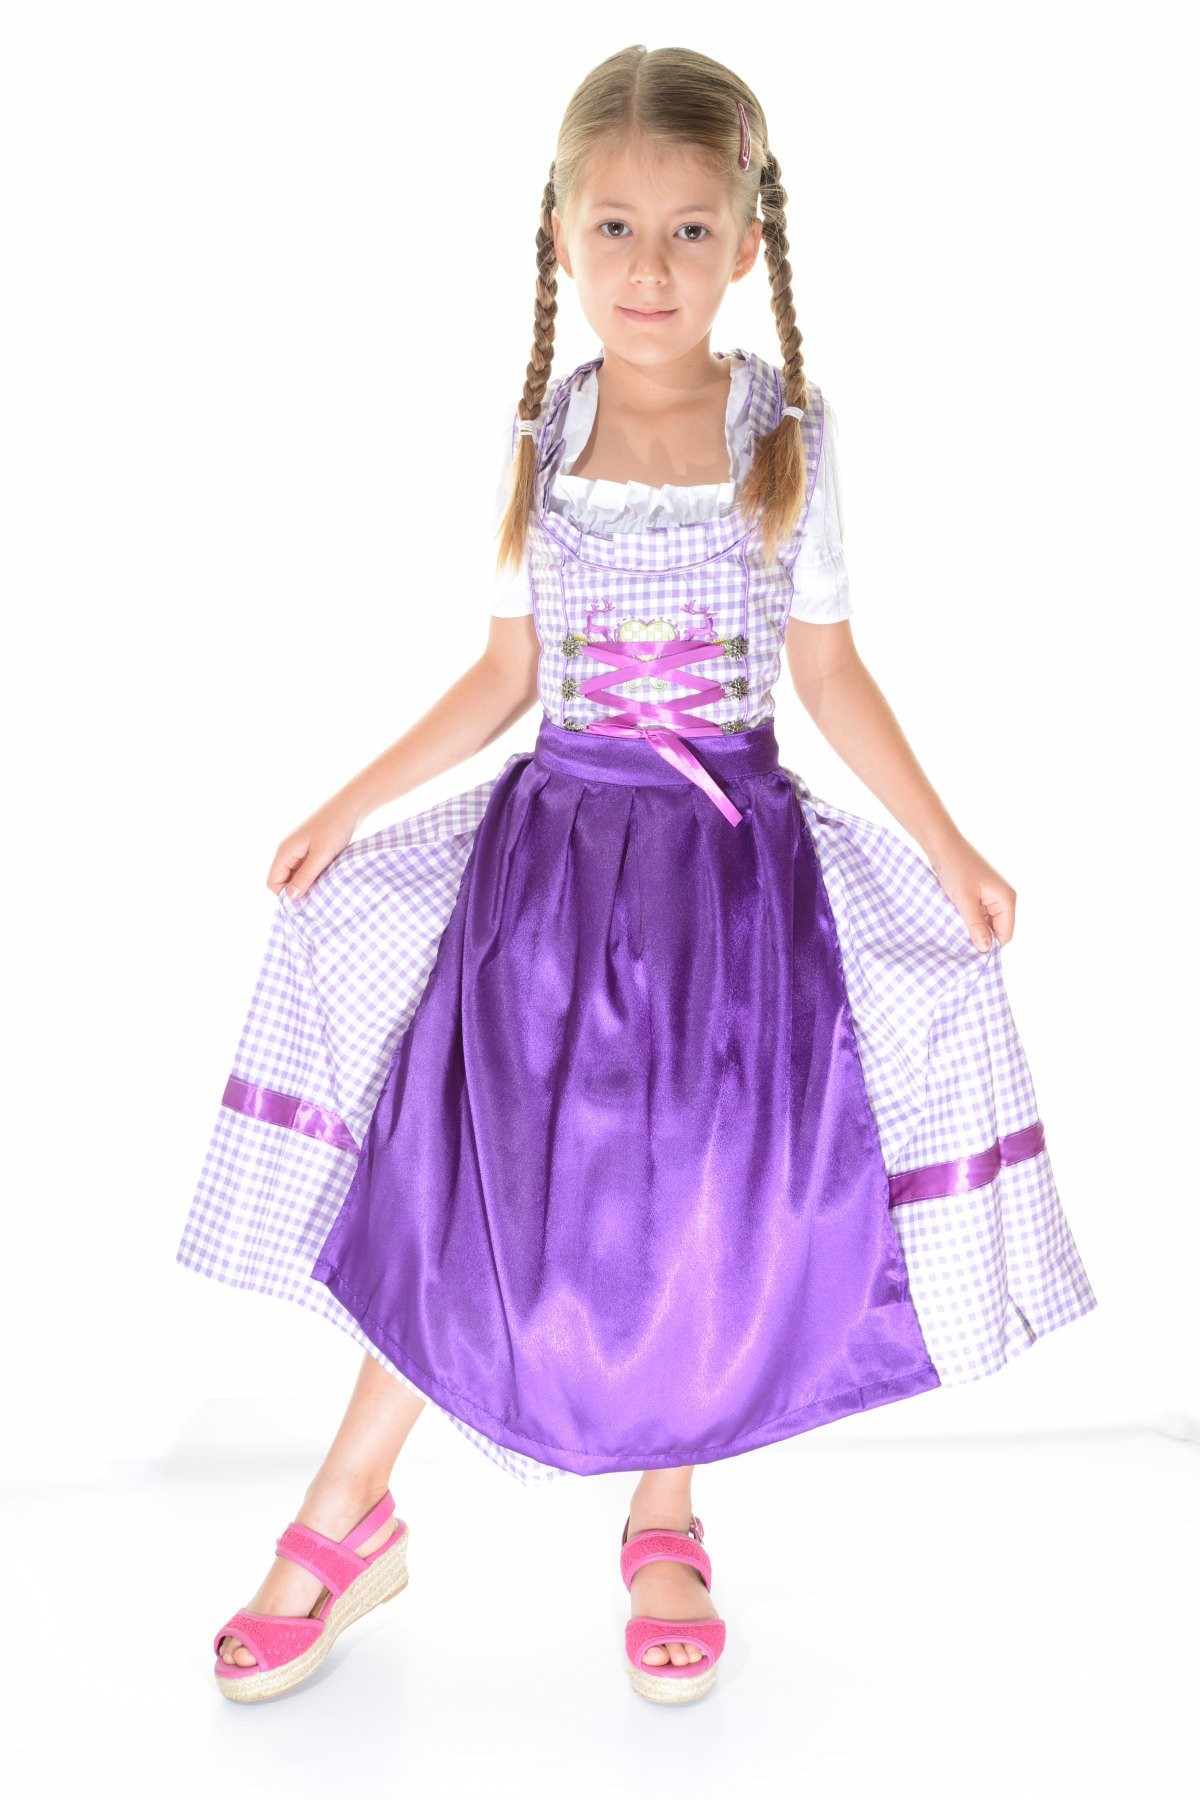 Kids Dirndl | Dirndl For Kids | Child Dirndl